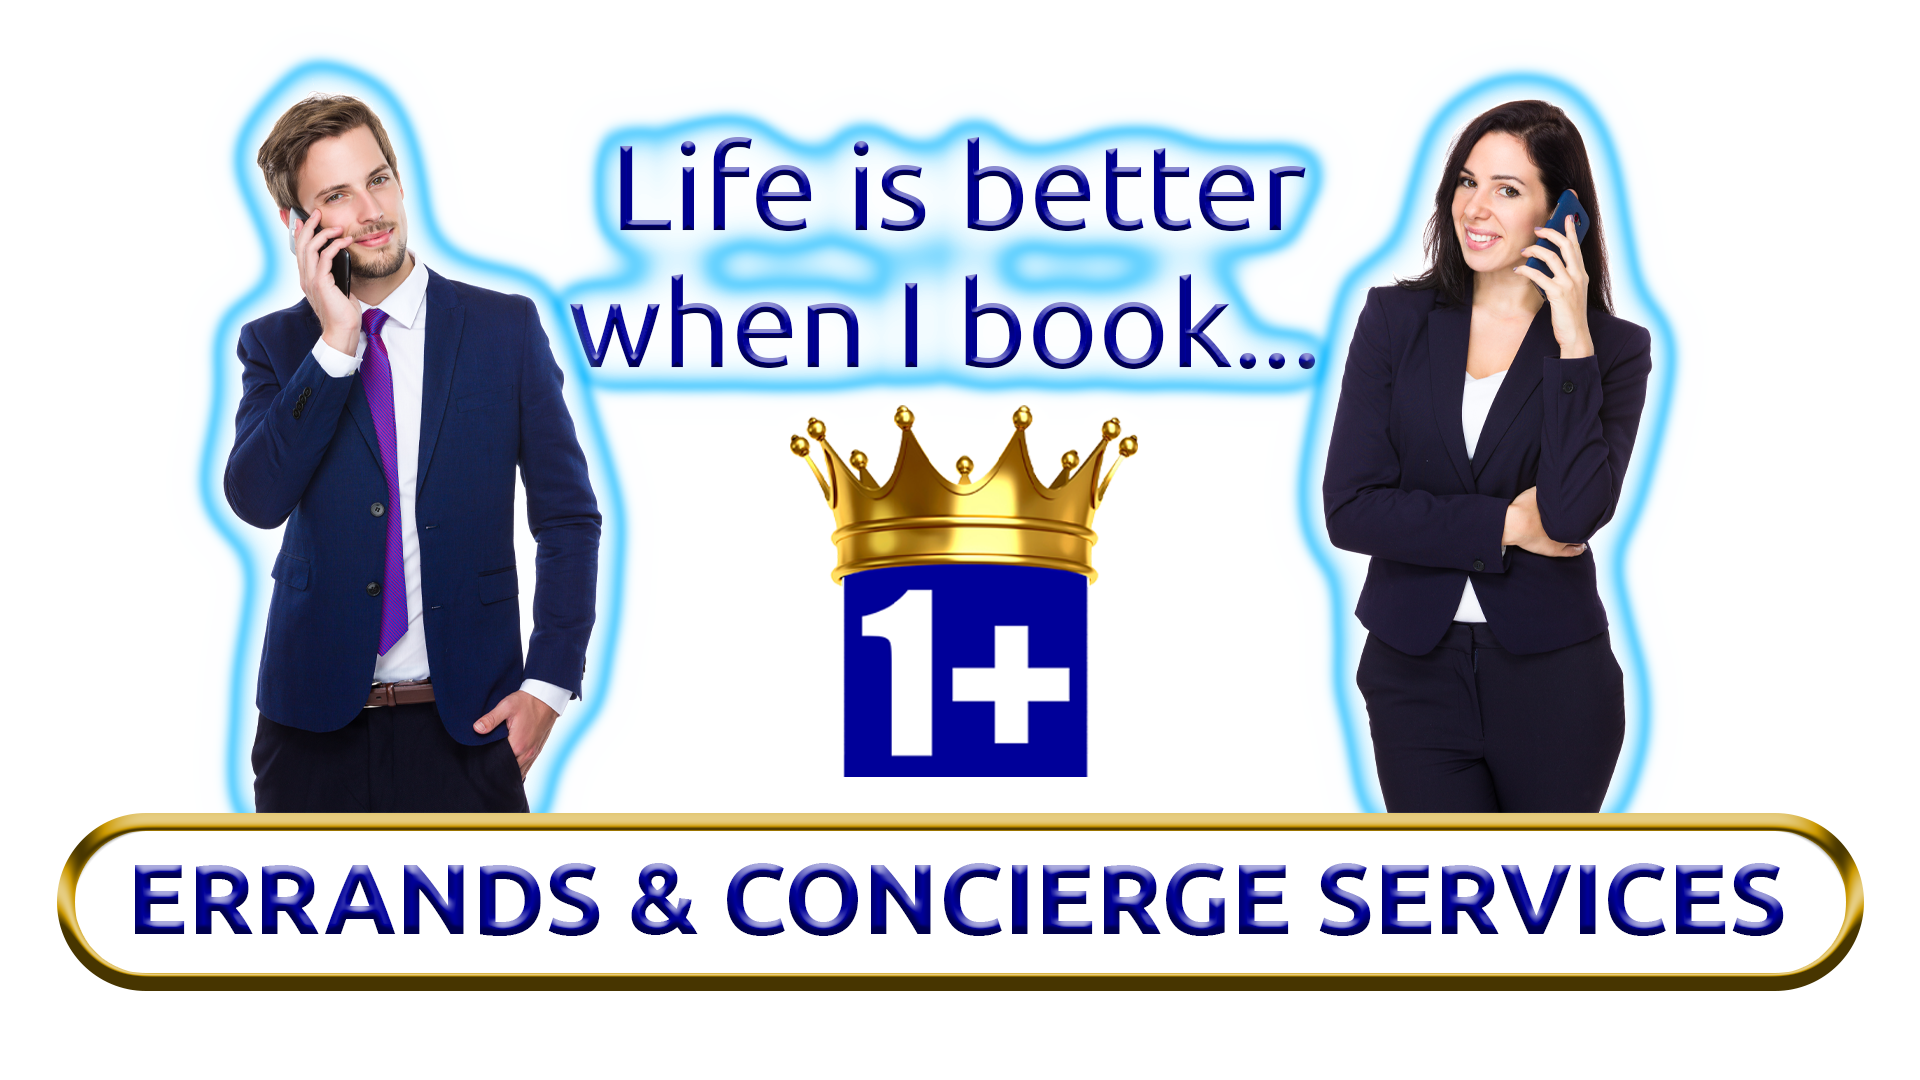 MASTERFUL CONCIERGE ERRAND RUNNER SERVICES BY 1+MOVERS - MOVING - MOVERS - MOVE - HOUSTON TEXAS - NASSAU BAY TEXAS - SEABROOK TEXAS - KEMAH TEXAS 8.2